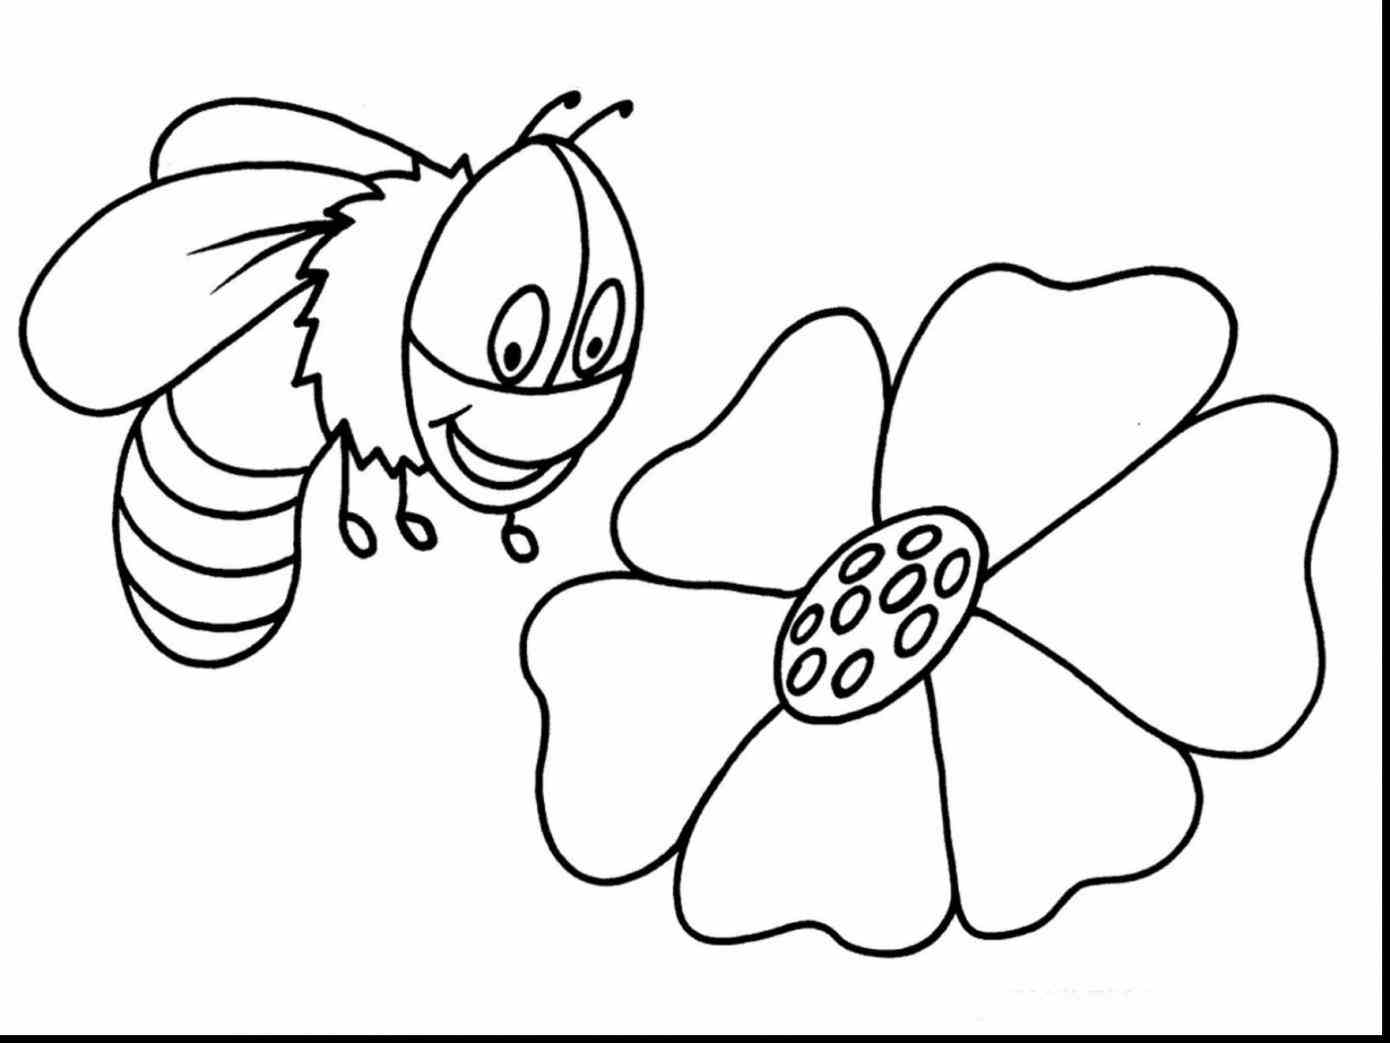 1390x1043 Best Of Bumble Bee Coloring Page Collection Printable Coloring Sheet